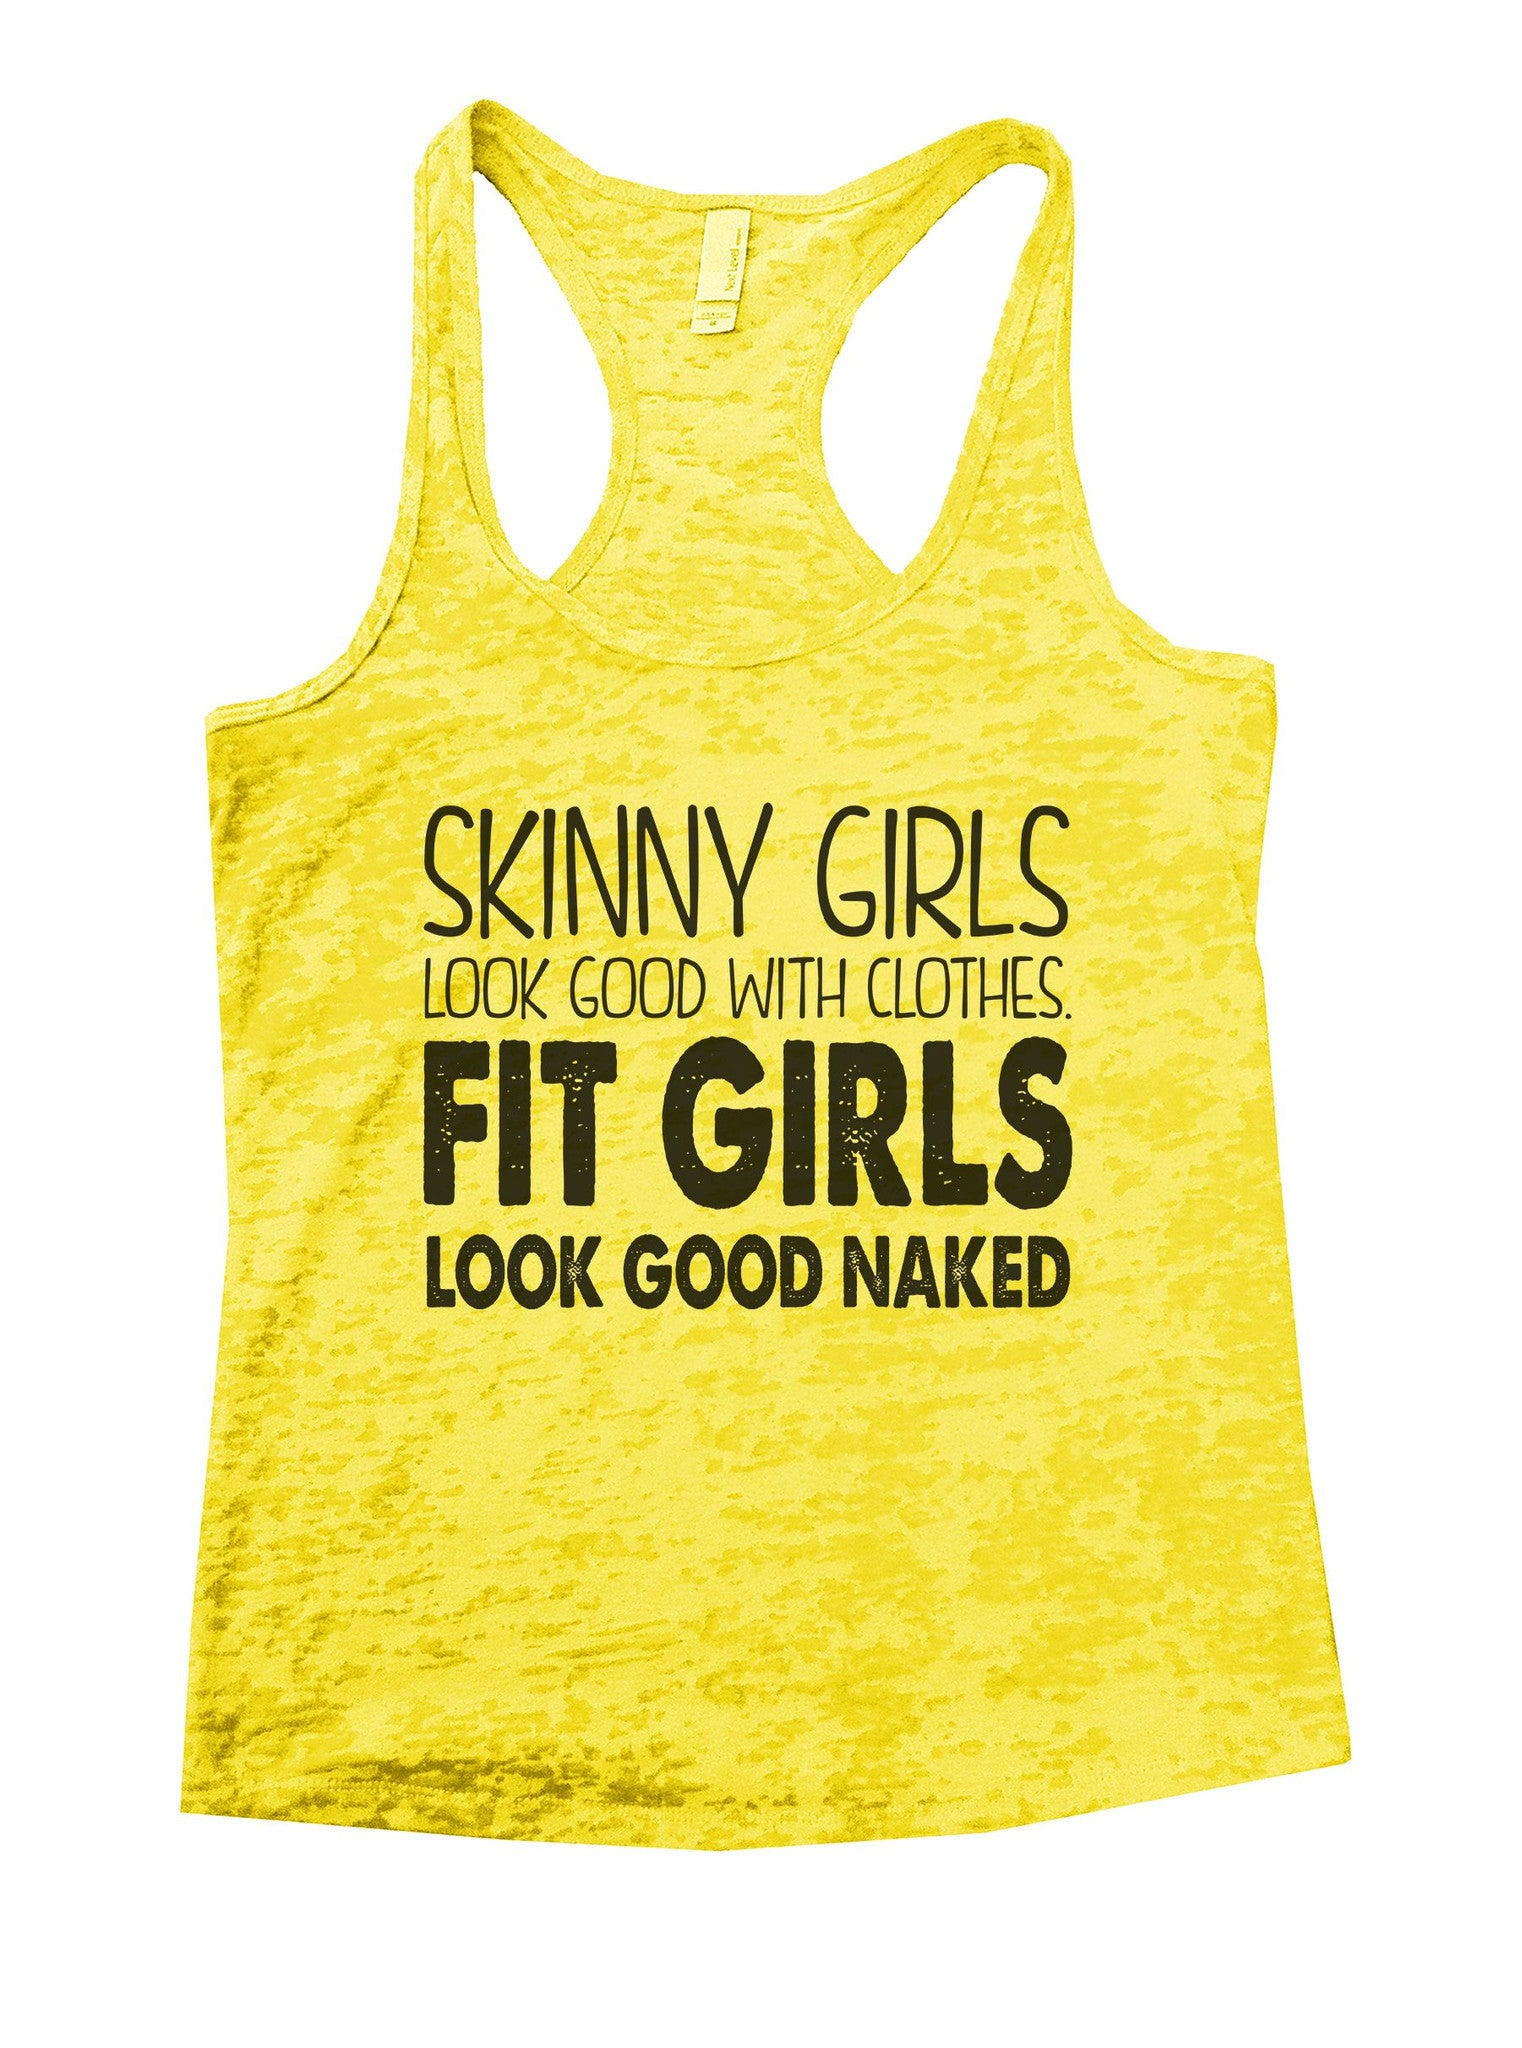 Skinny Girls Look Good With Clothes. Fit Girls Look Good Naked Burnout Tank Top By BurnoutTankTops.com - 916 - Funny Shirts Tank Tops Burnouts and Triblends  - 6